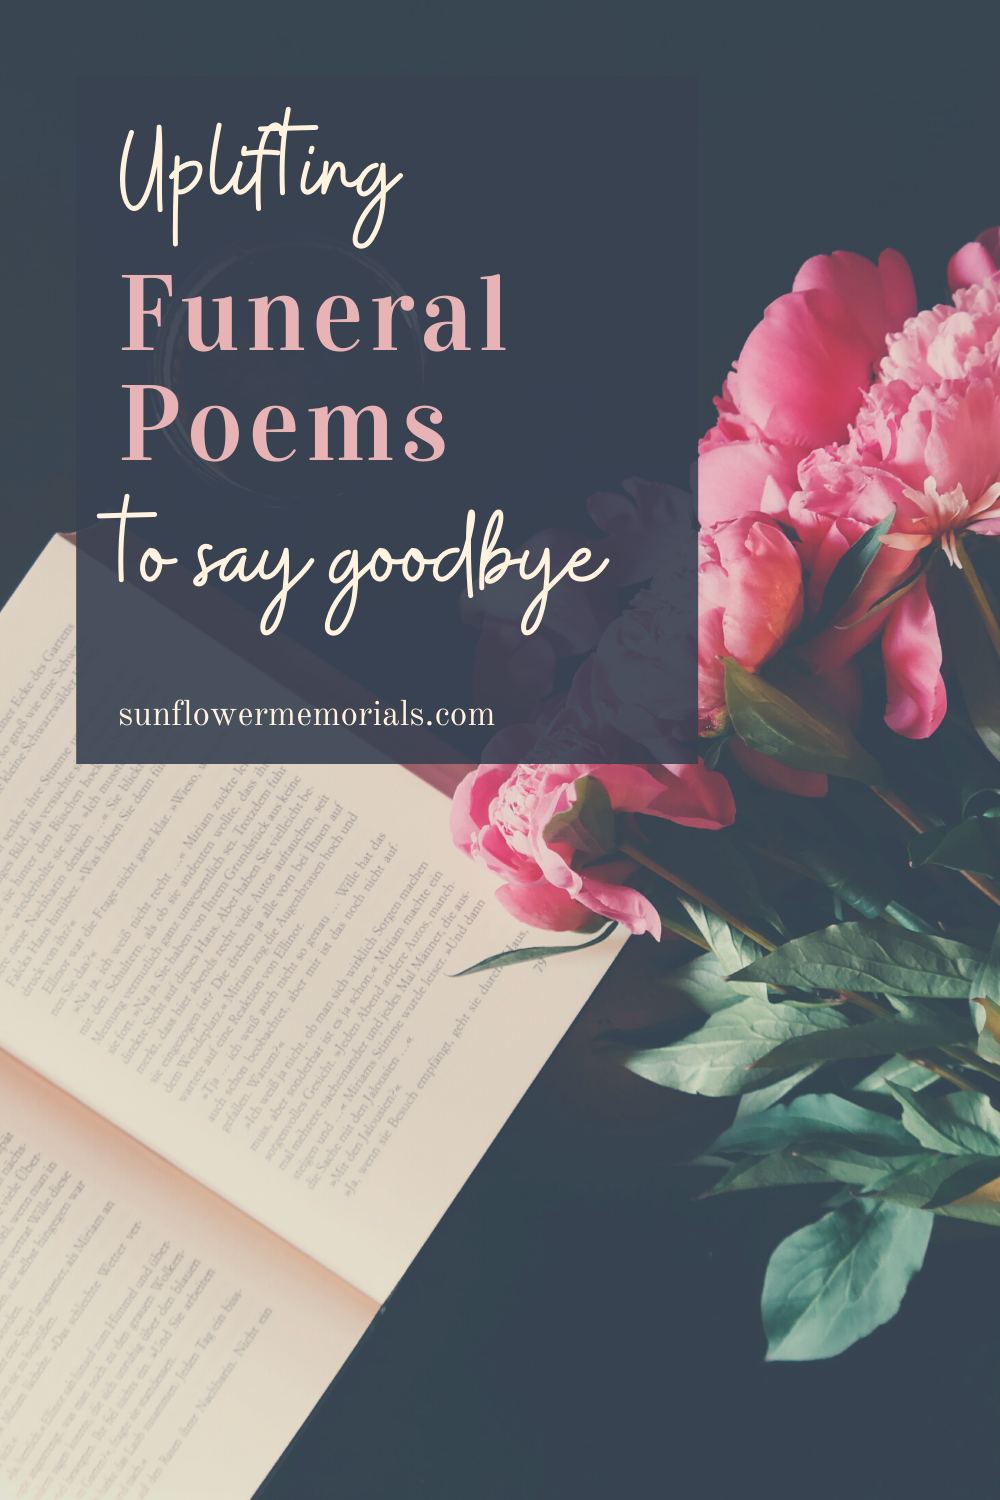 Uplifting Funeral Poems to Say Goodbye